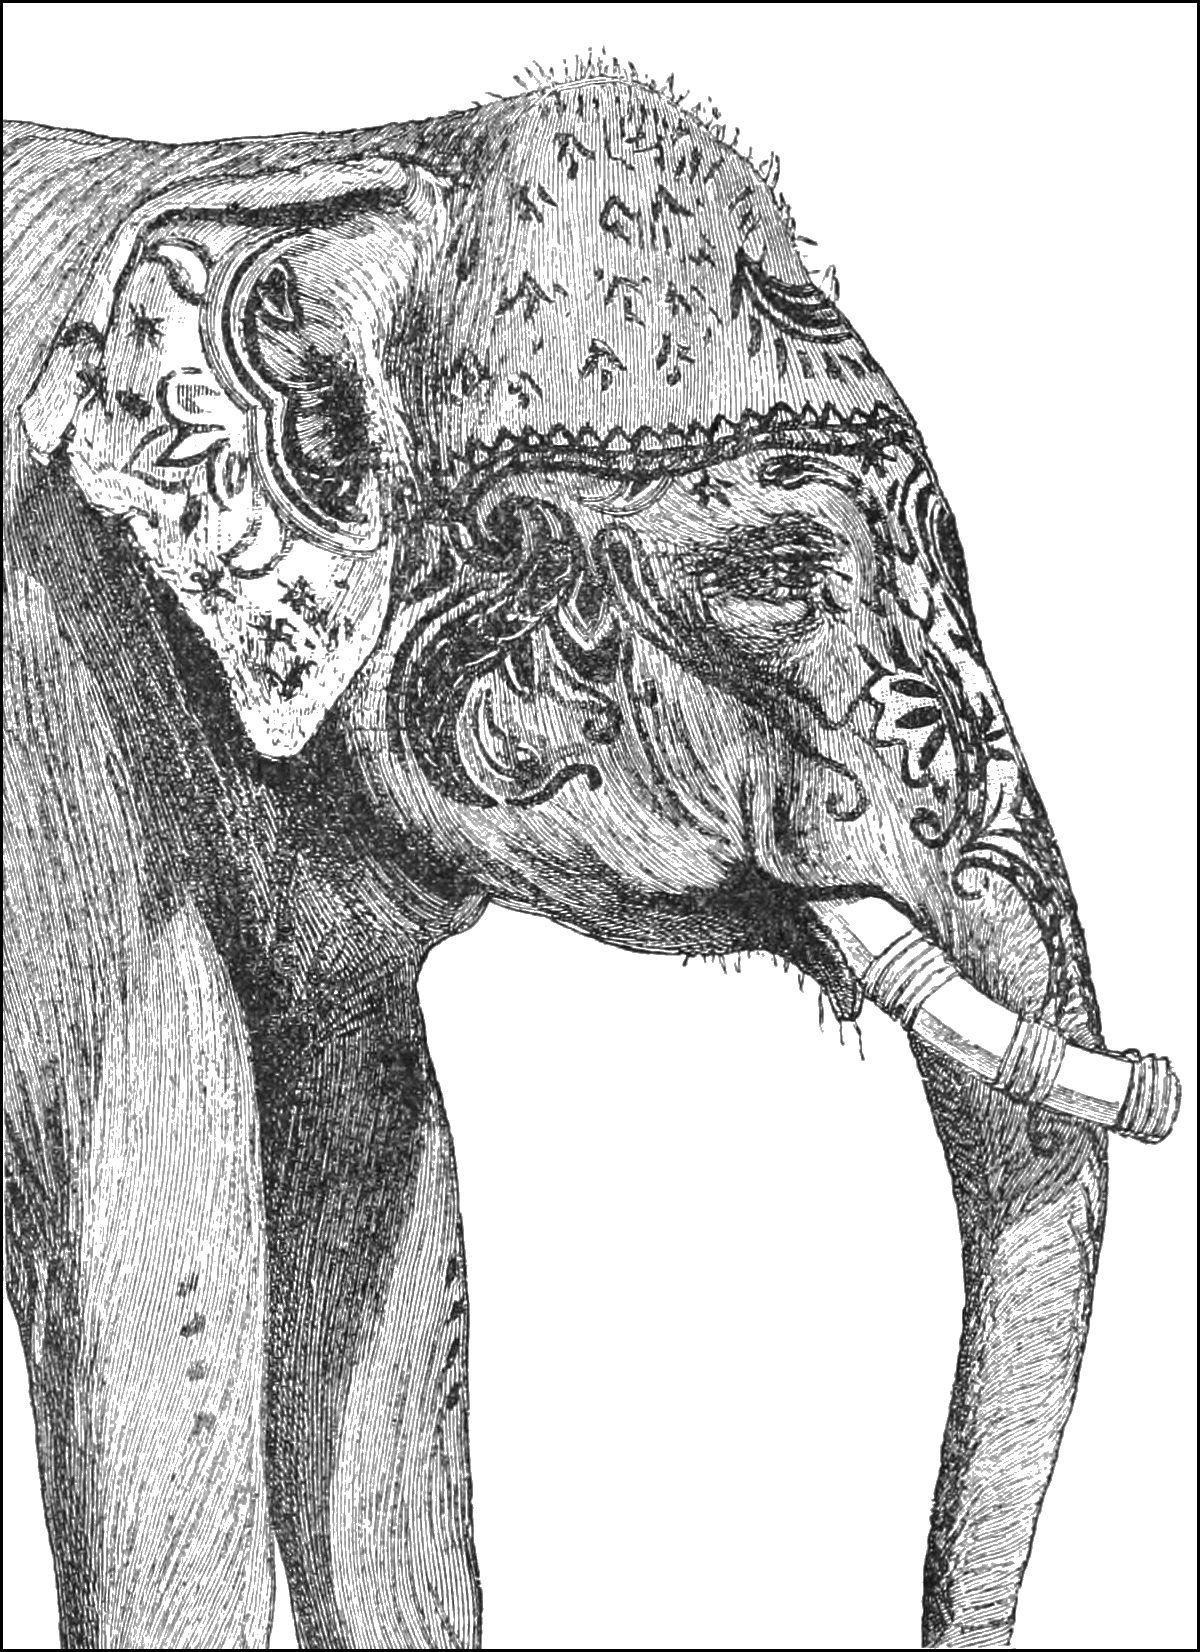 PSM V40 D624 A painted elephant.jpg